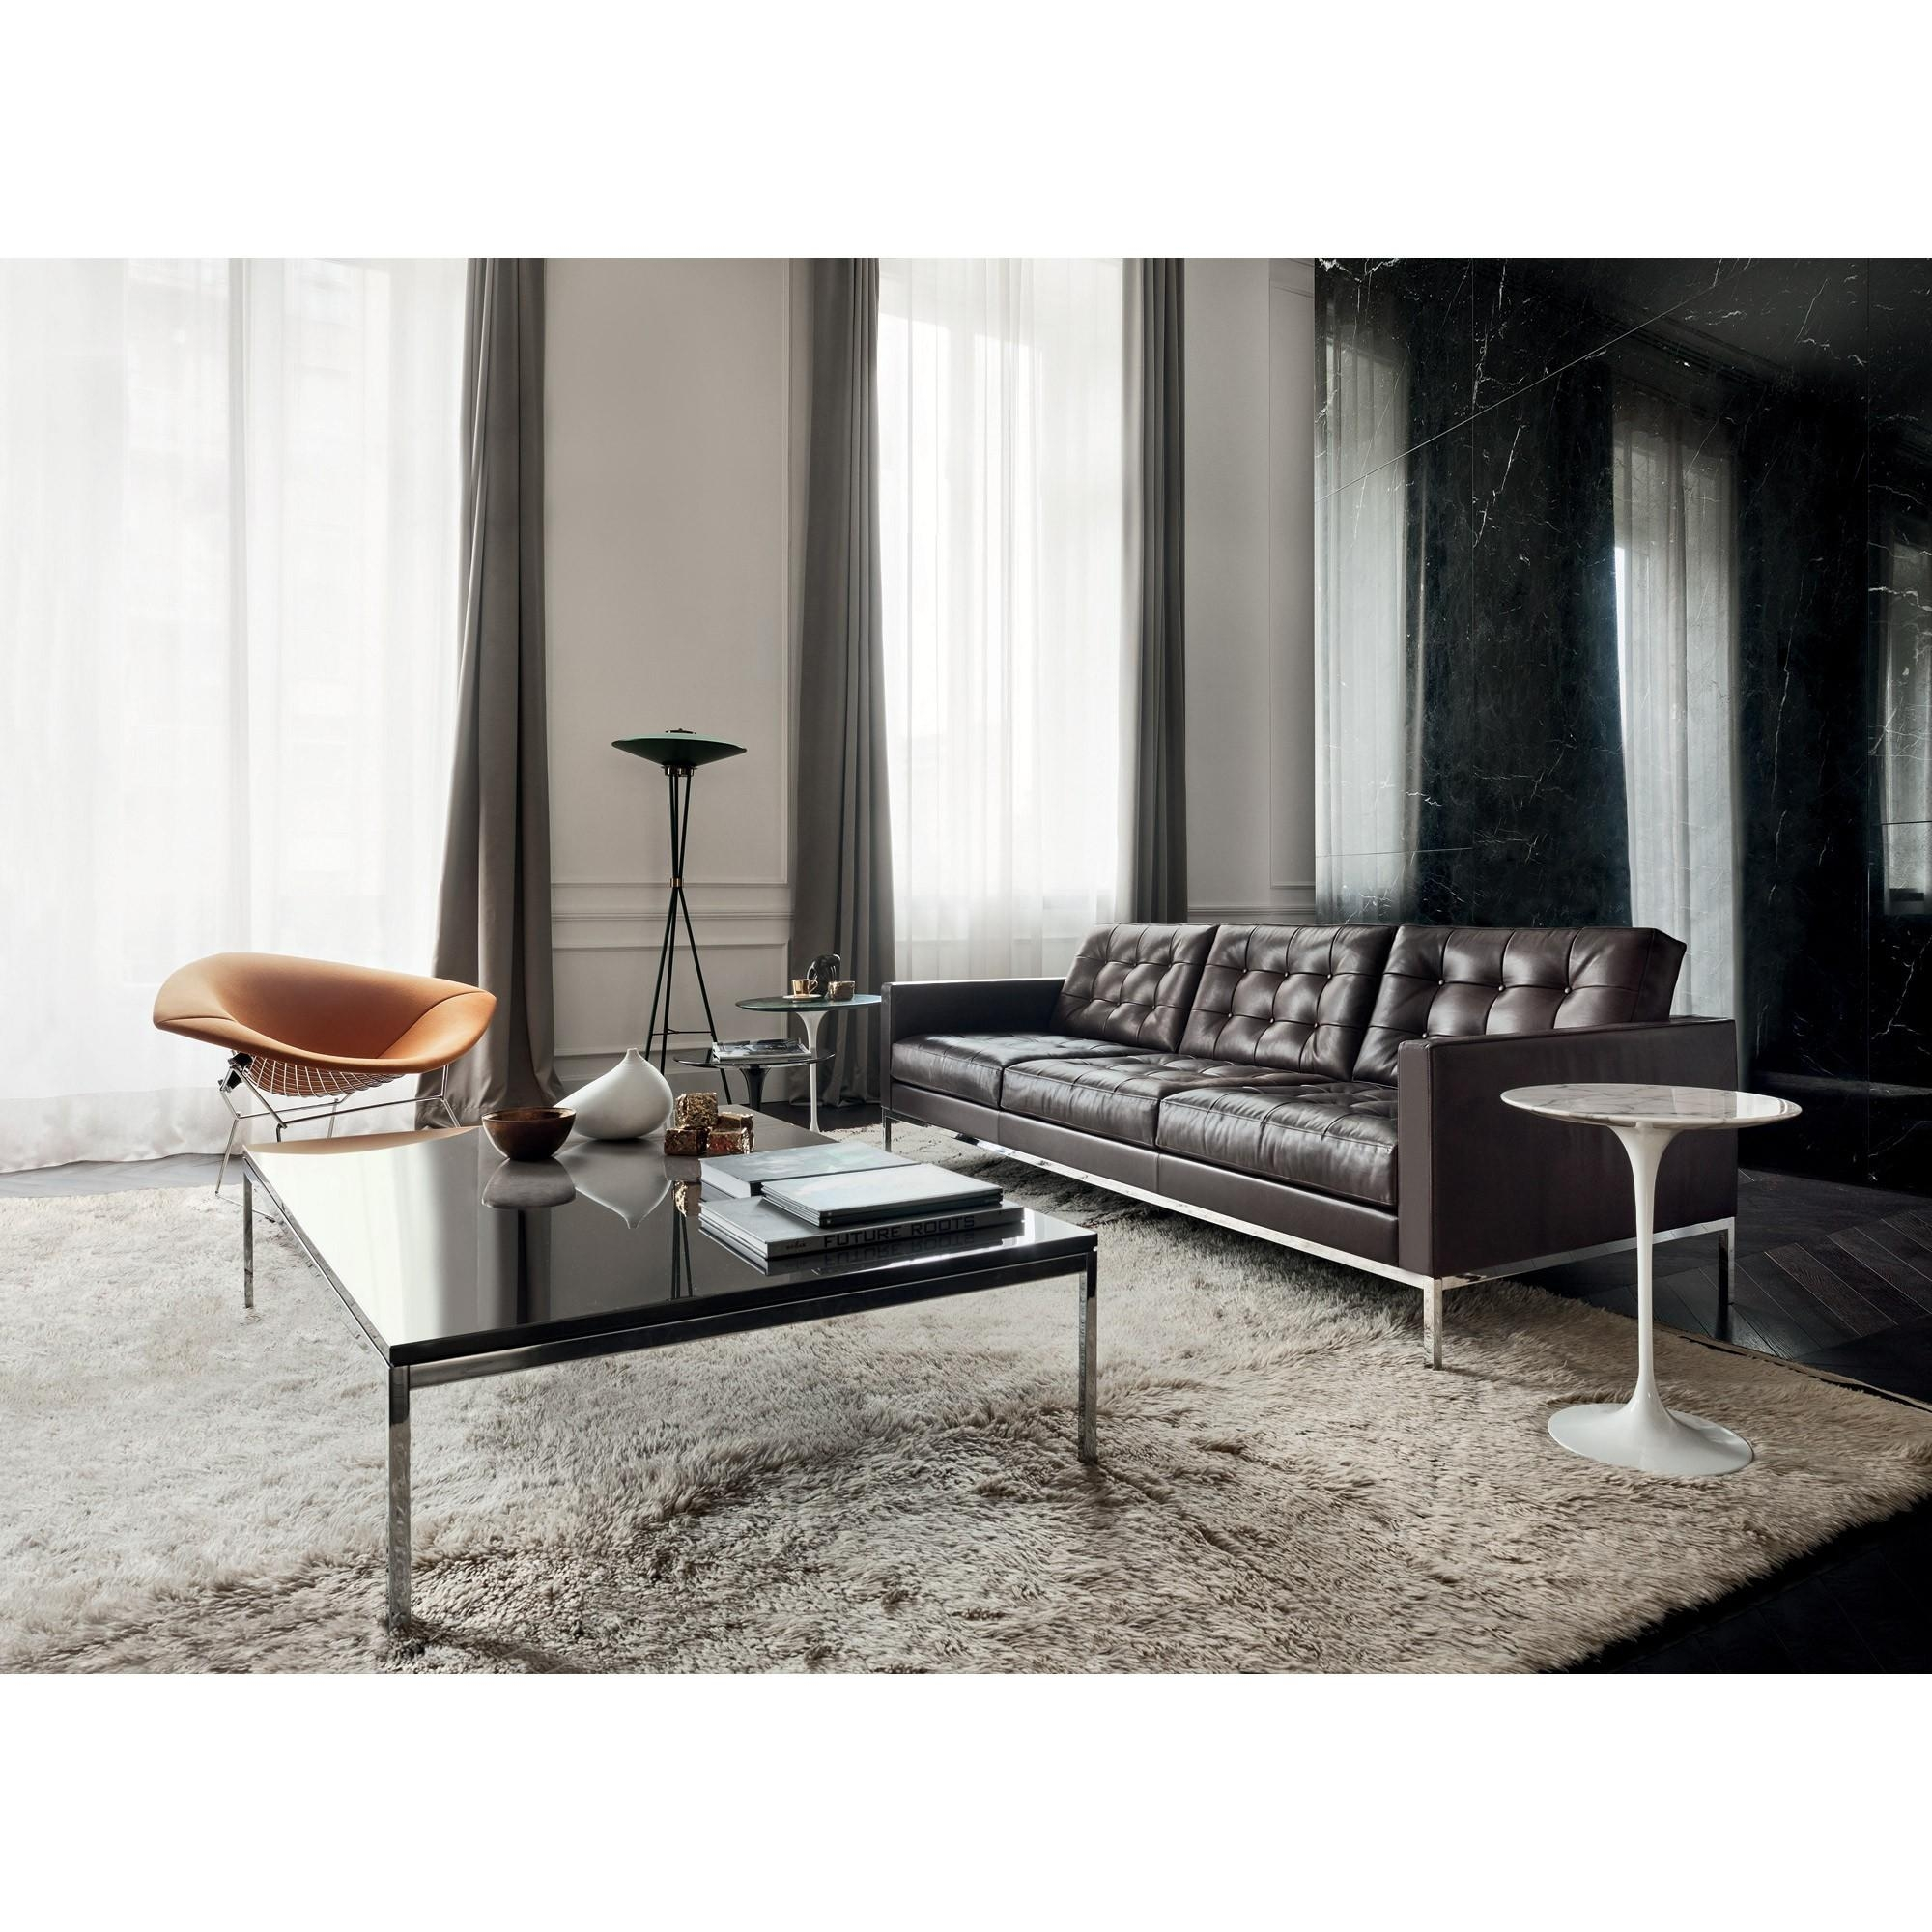 Florence Knoll 'relax' Sofa | Skandium In Florence Knoll 3 Seater Sofas (View 20 of 20)